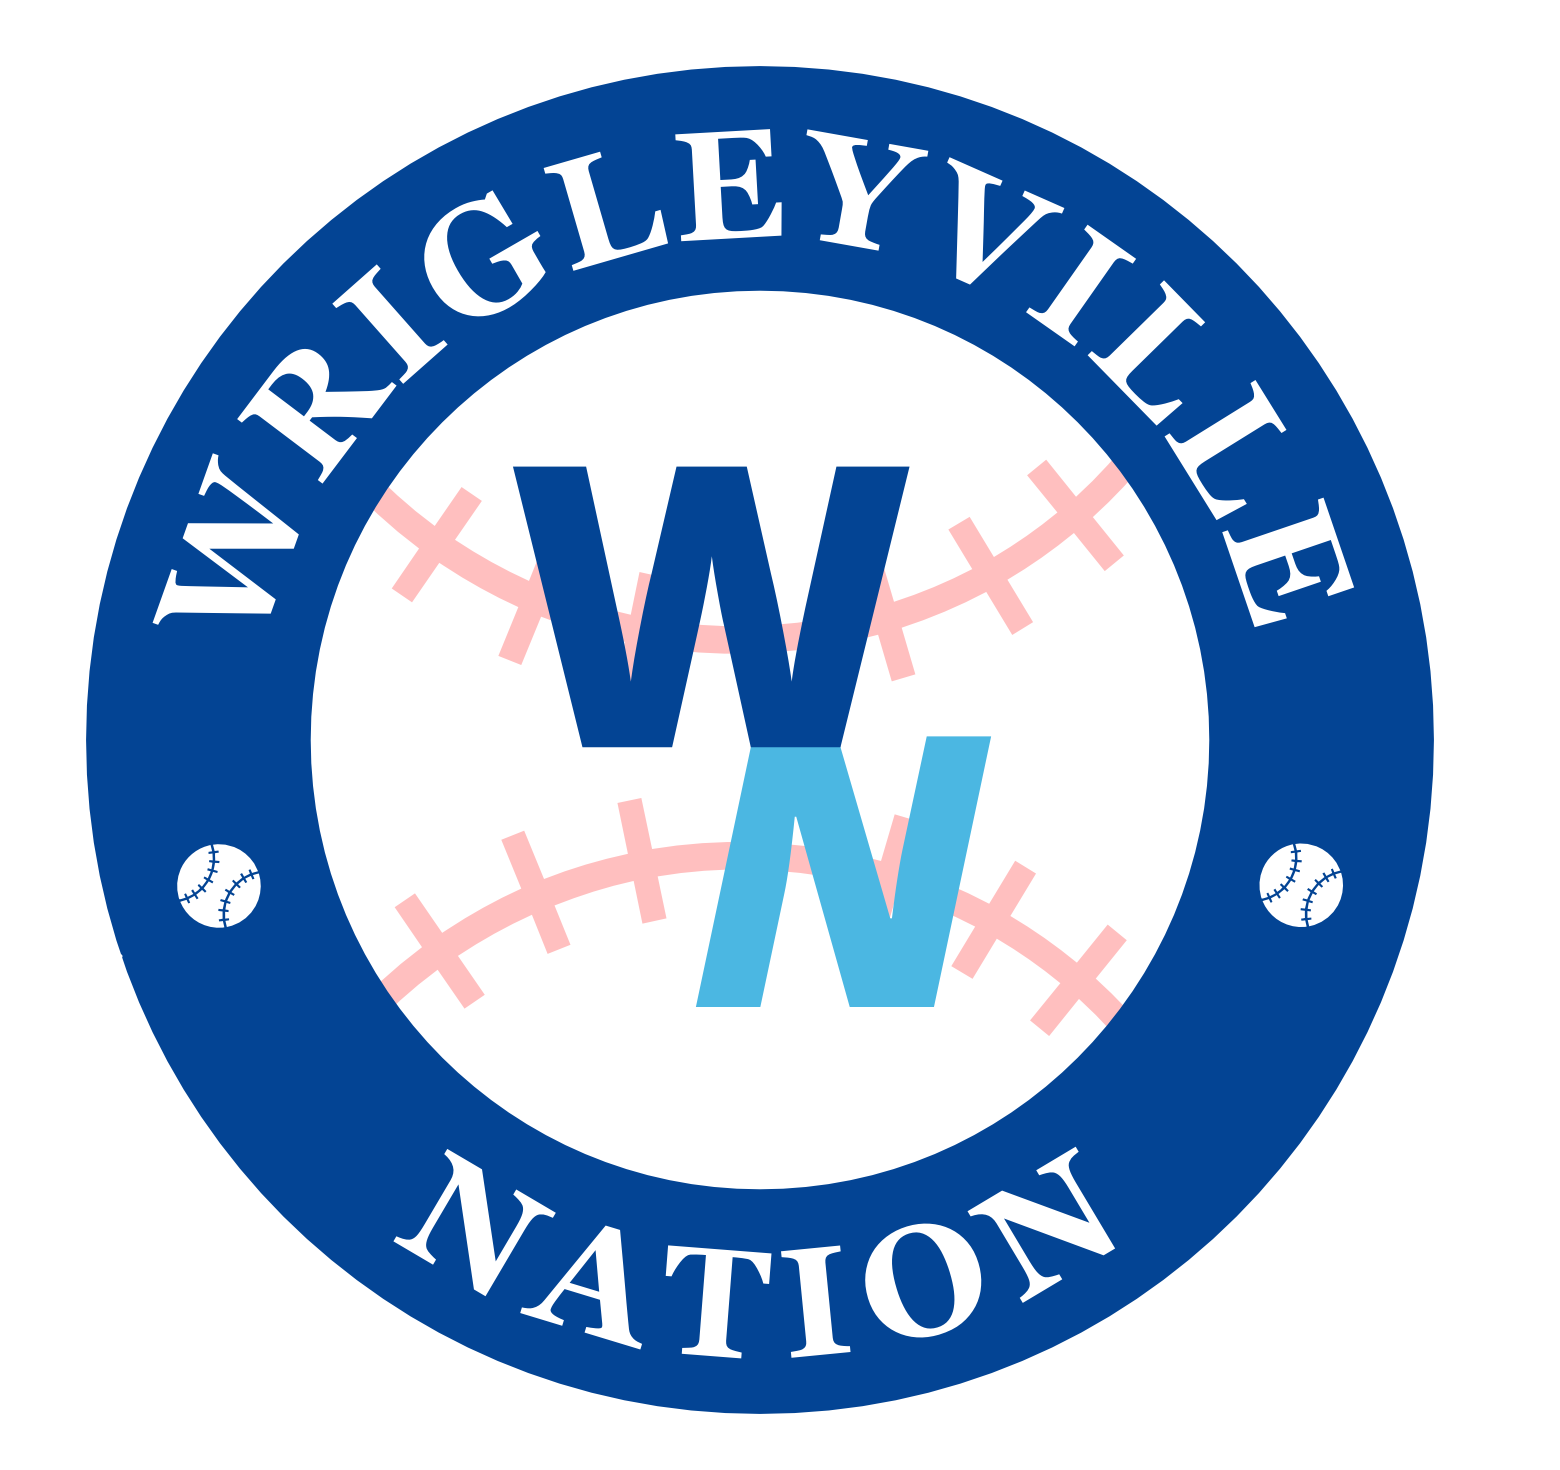 Wrigleyville Nation Ep 230 - Guest: Michael Cerami, Cubs Sox Recap, Darvish Love, & More show art